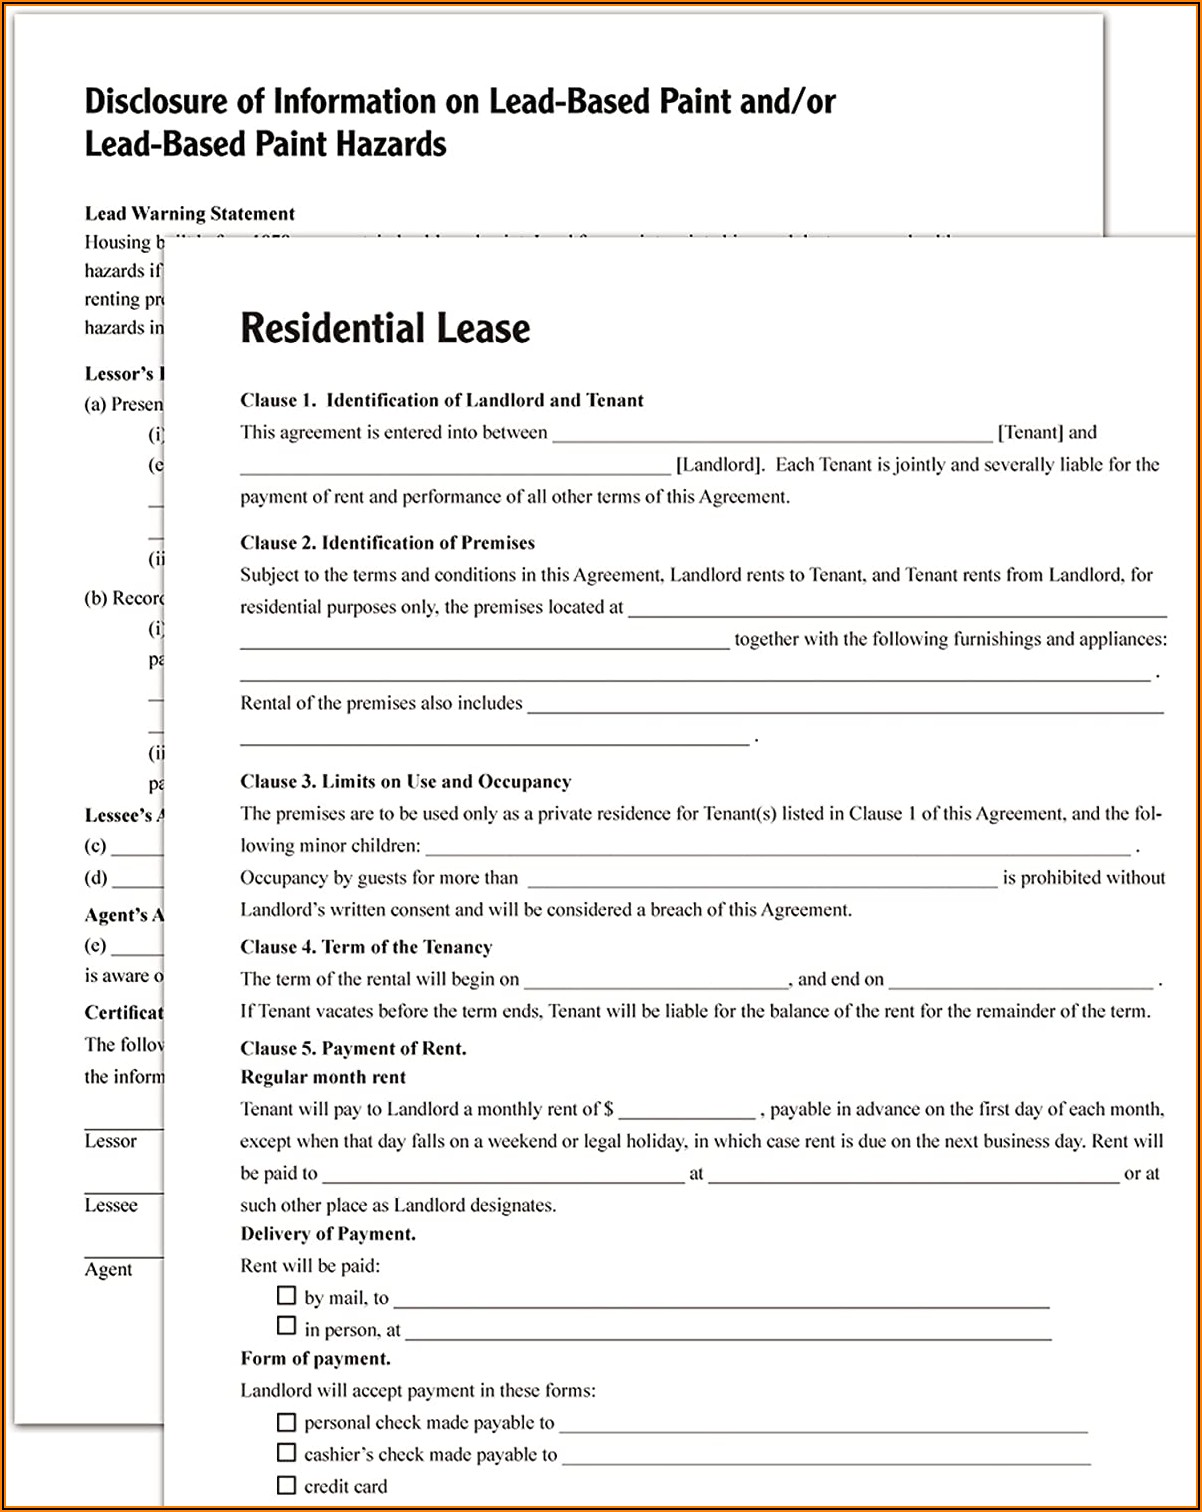 Adams Residential Lease Forms And Instructions Print And Downloadable (lf310)